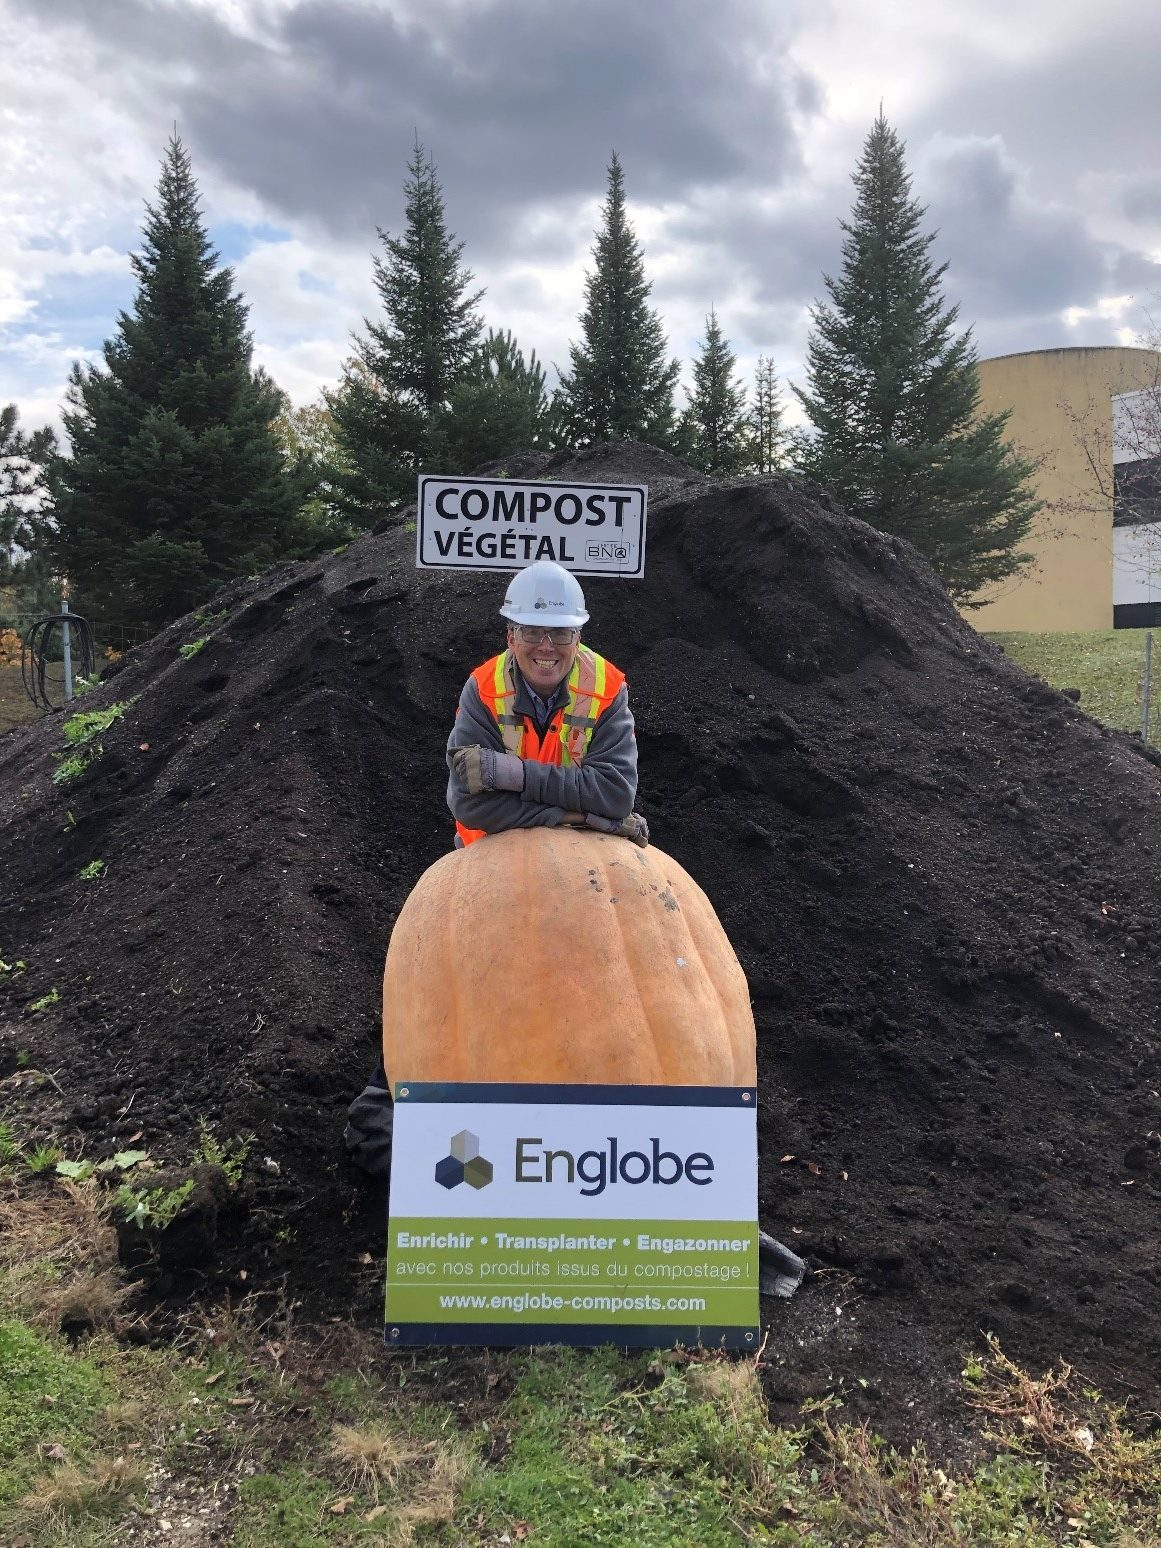 Serge Loubier of Englobe Corp. with their winning pumpkin